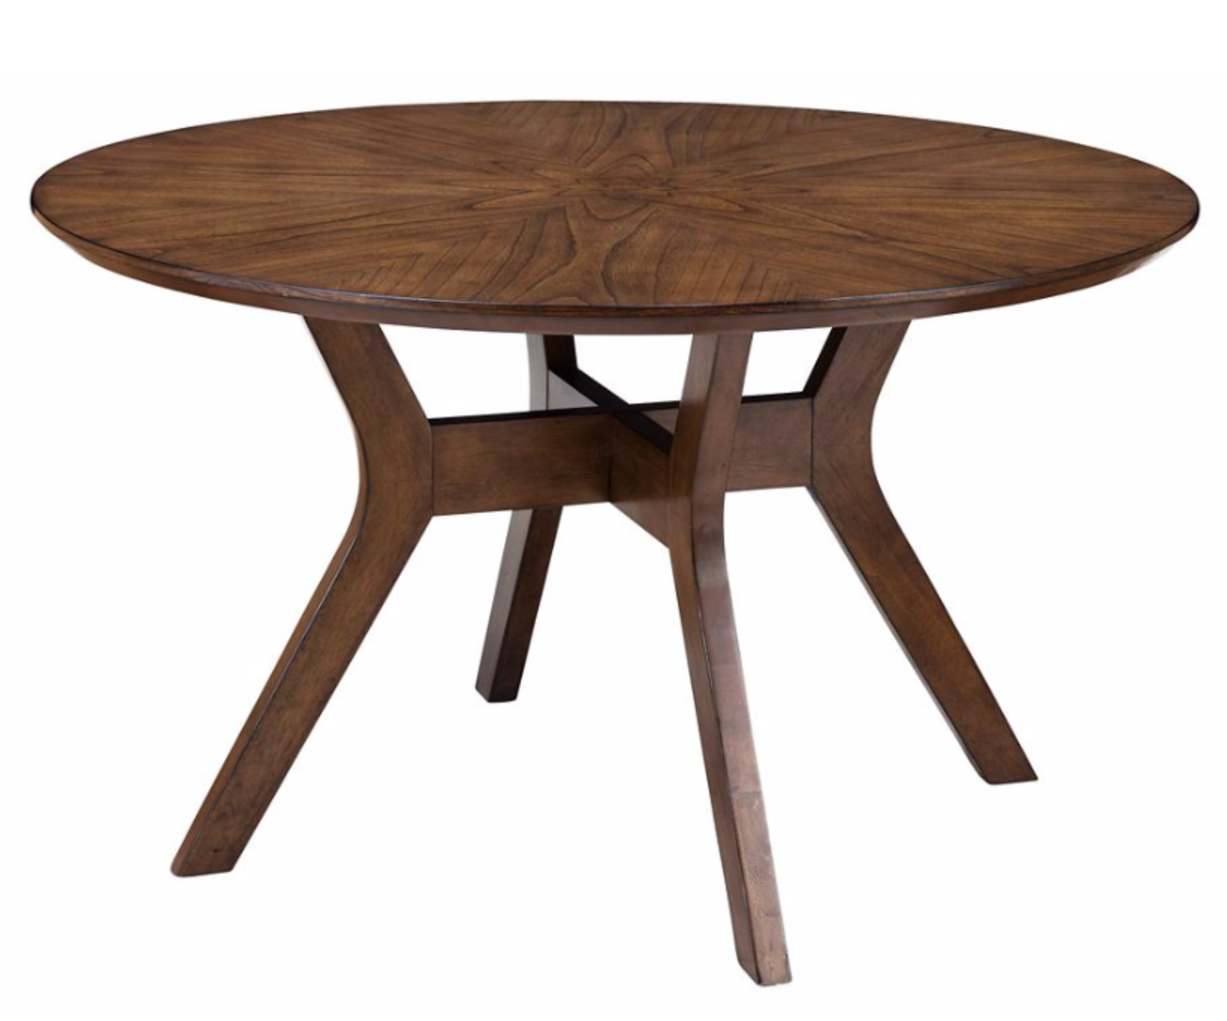 Pryce Dining Table by Raymour & Flanigan